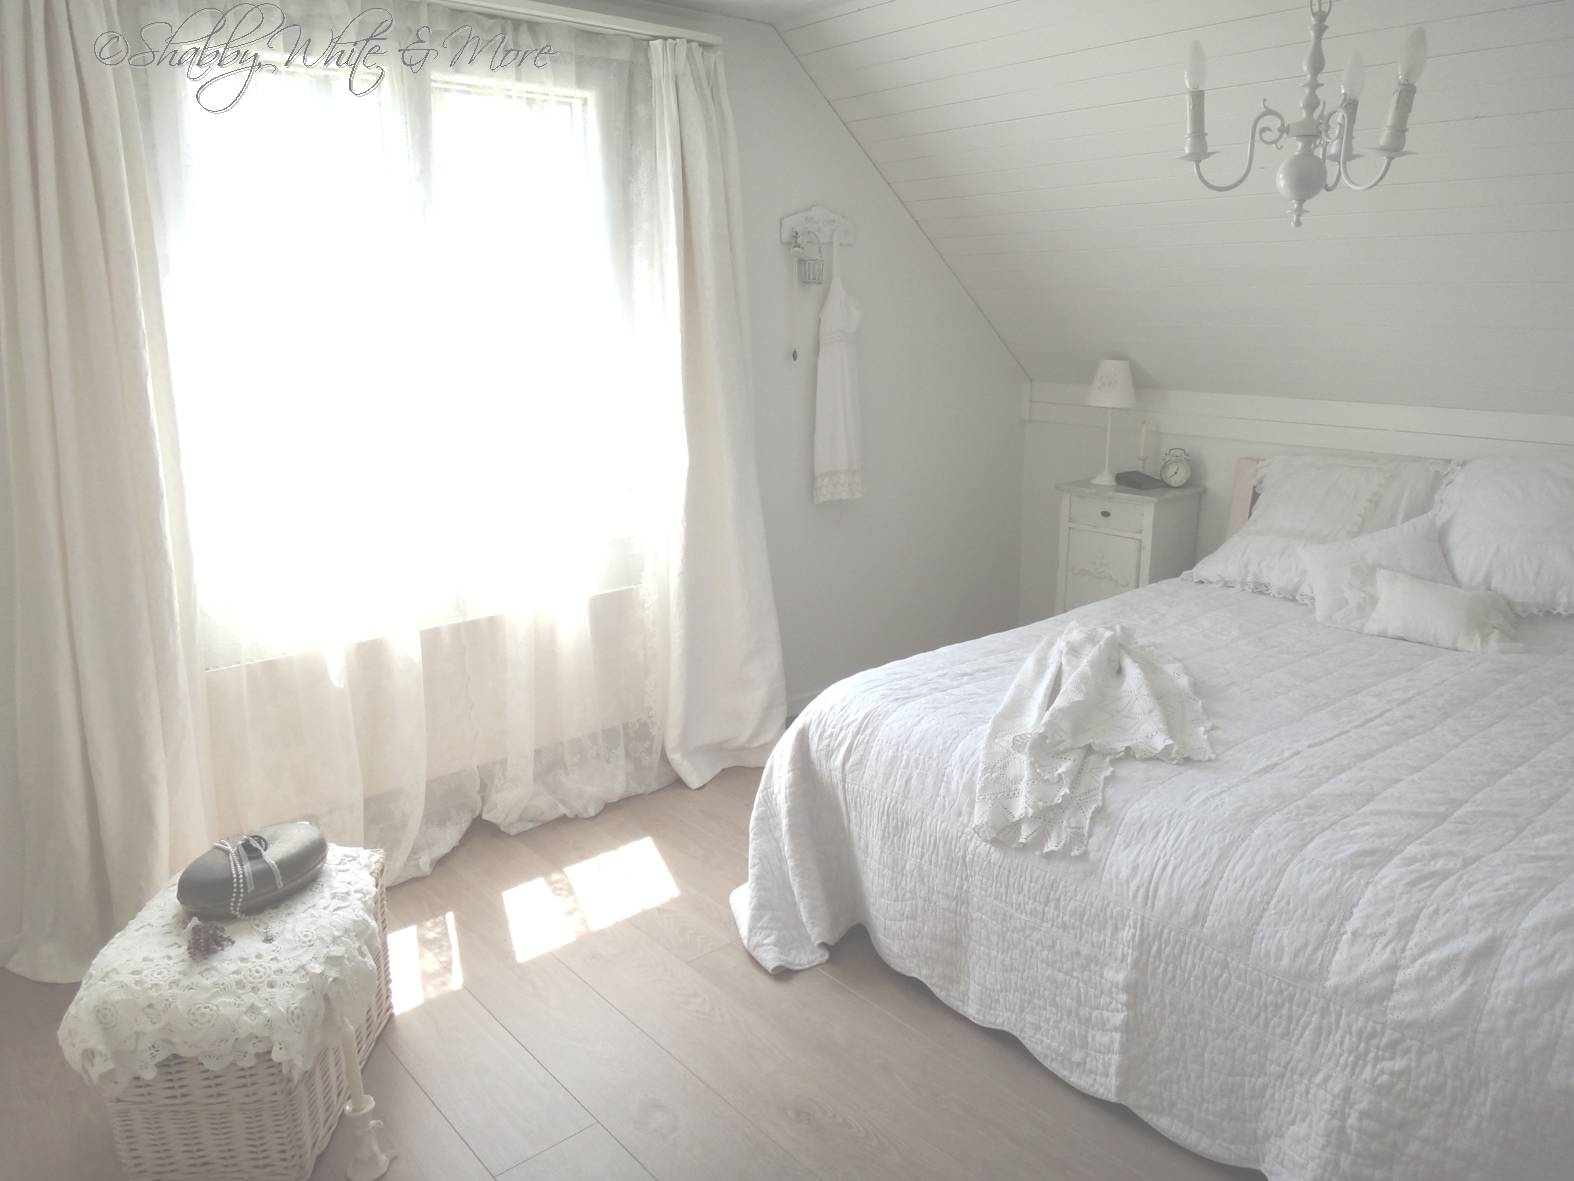 shabby white and more neues schlafzimmer. Black Bedroom Furniture Sets. Home Design Ideas